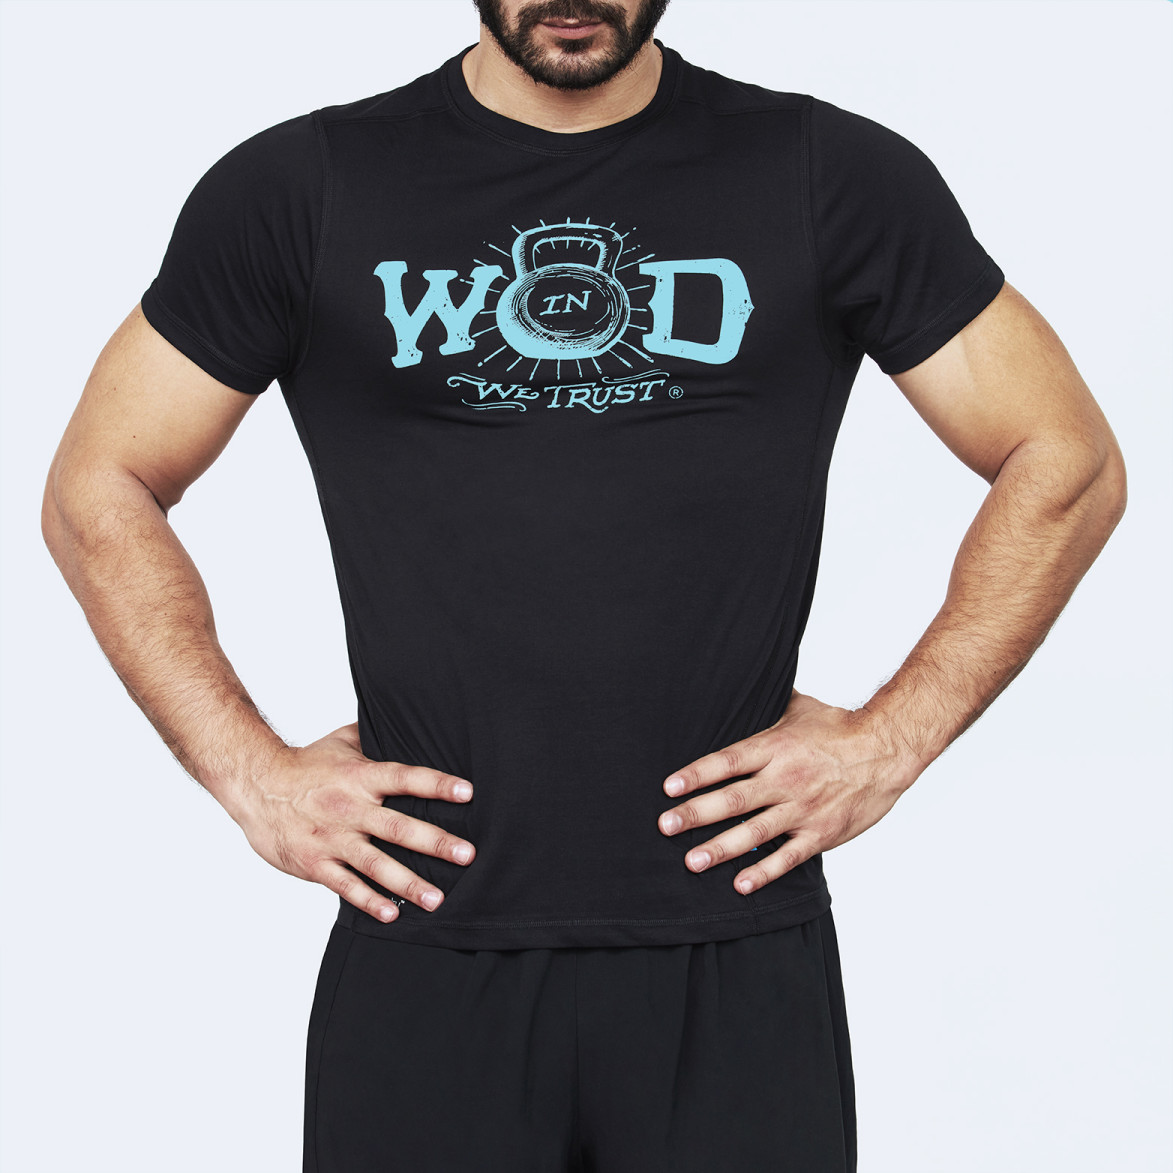 CrossFit t-shirt for men from recycled materials XFeat In Wod We Trust black & blue front